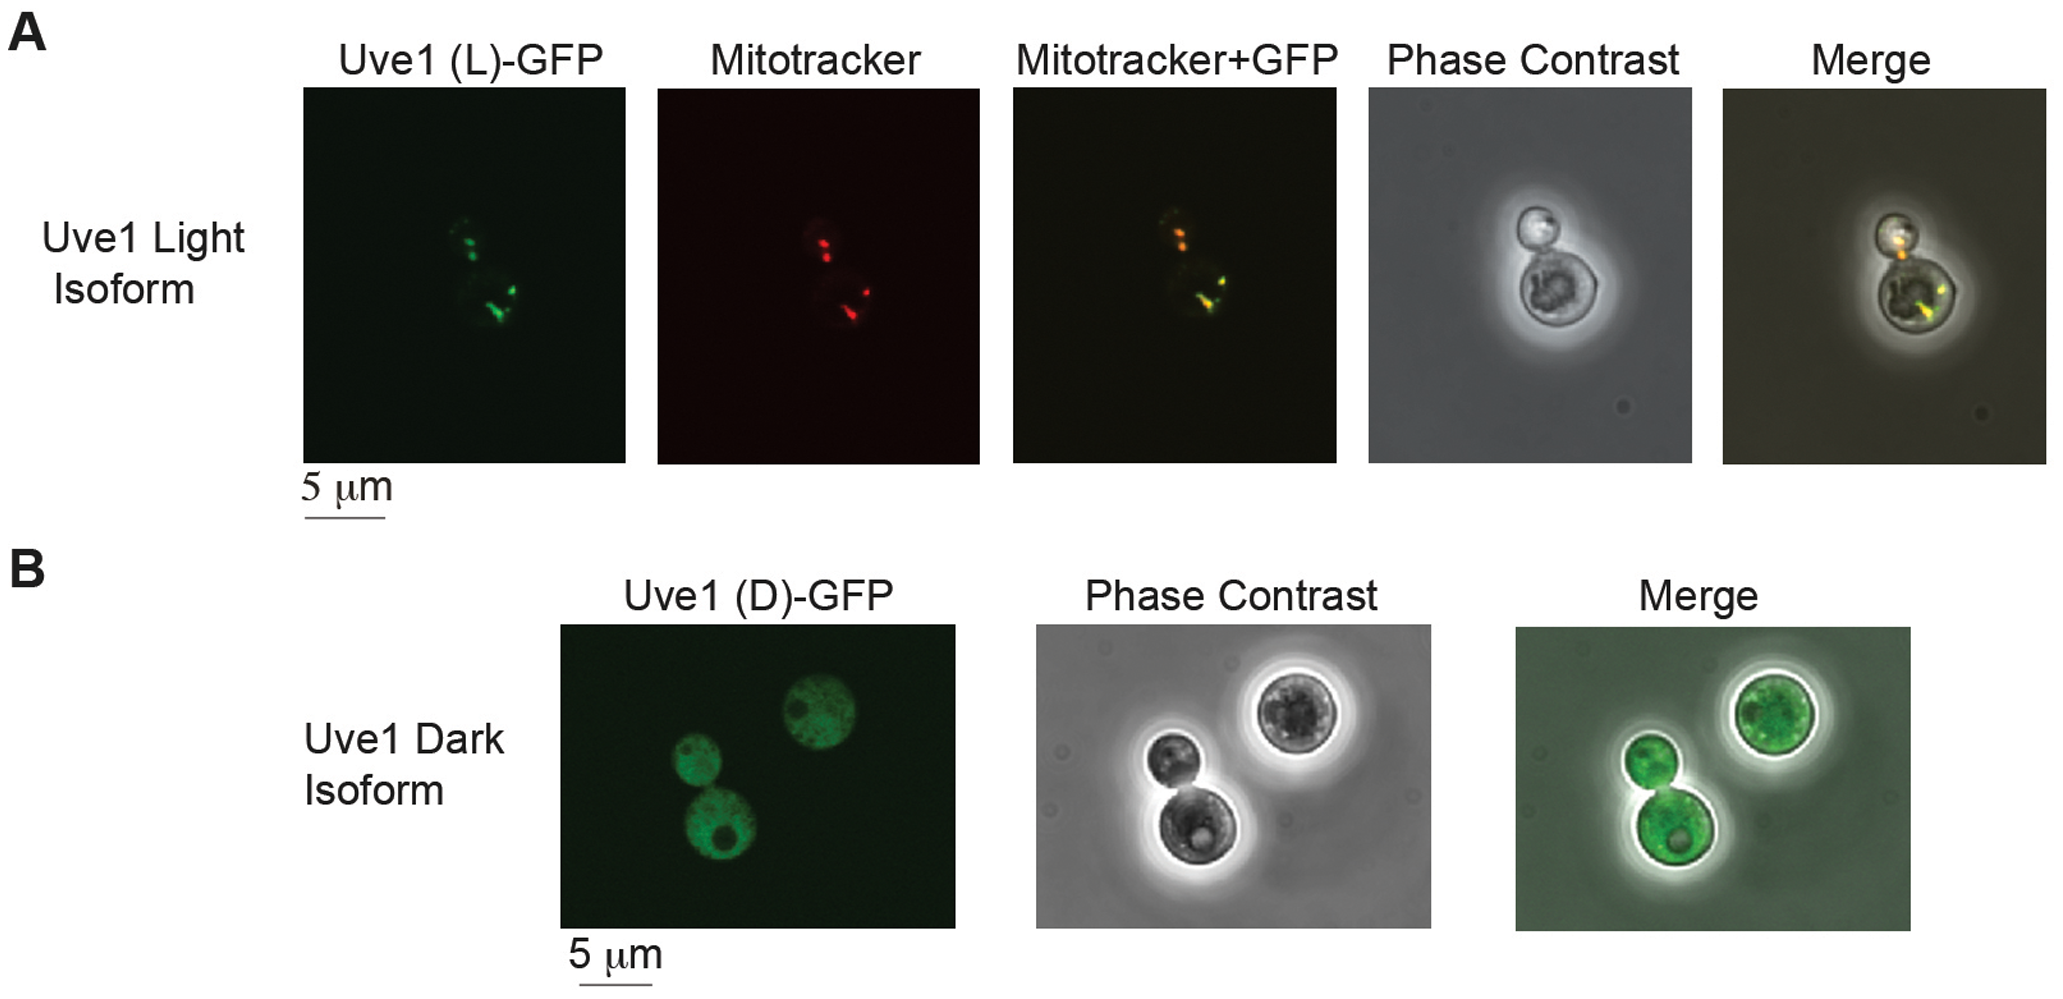 Subcellular localization of Uve1 (L)-GFP and Uve1 (D)-GFP from <i>C. neoformans</i> var. <i>neoformans</i> in the vegetative yeast cells of <i>C. neoformans</i> var. <i>grubii</i> (A) Uve1 (L)-GFP localization and (B) Uve1 (D)-GFP localization.